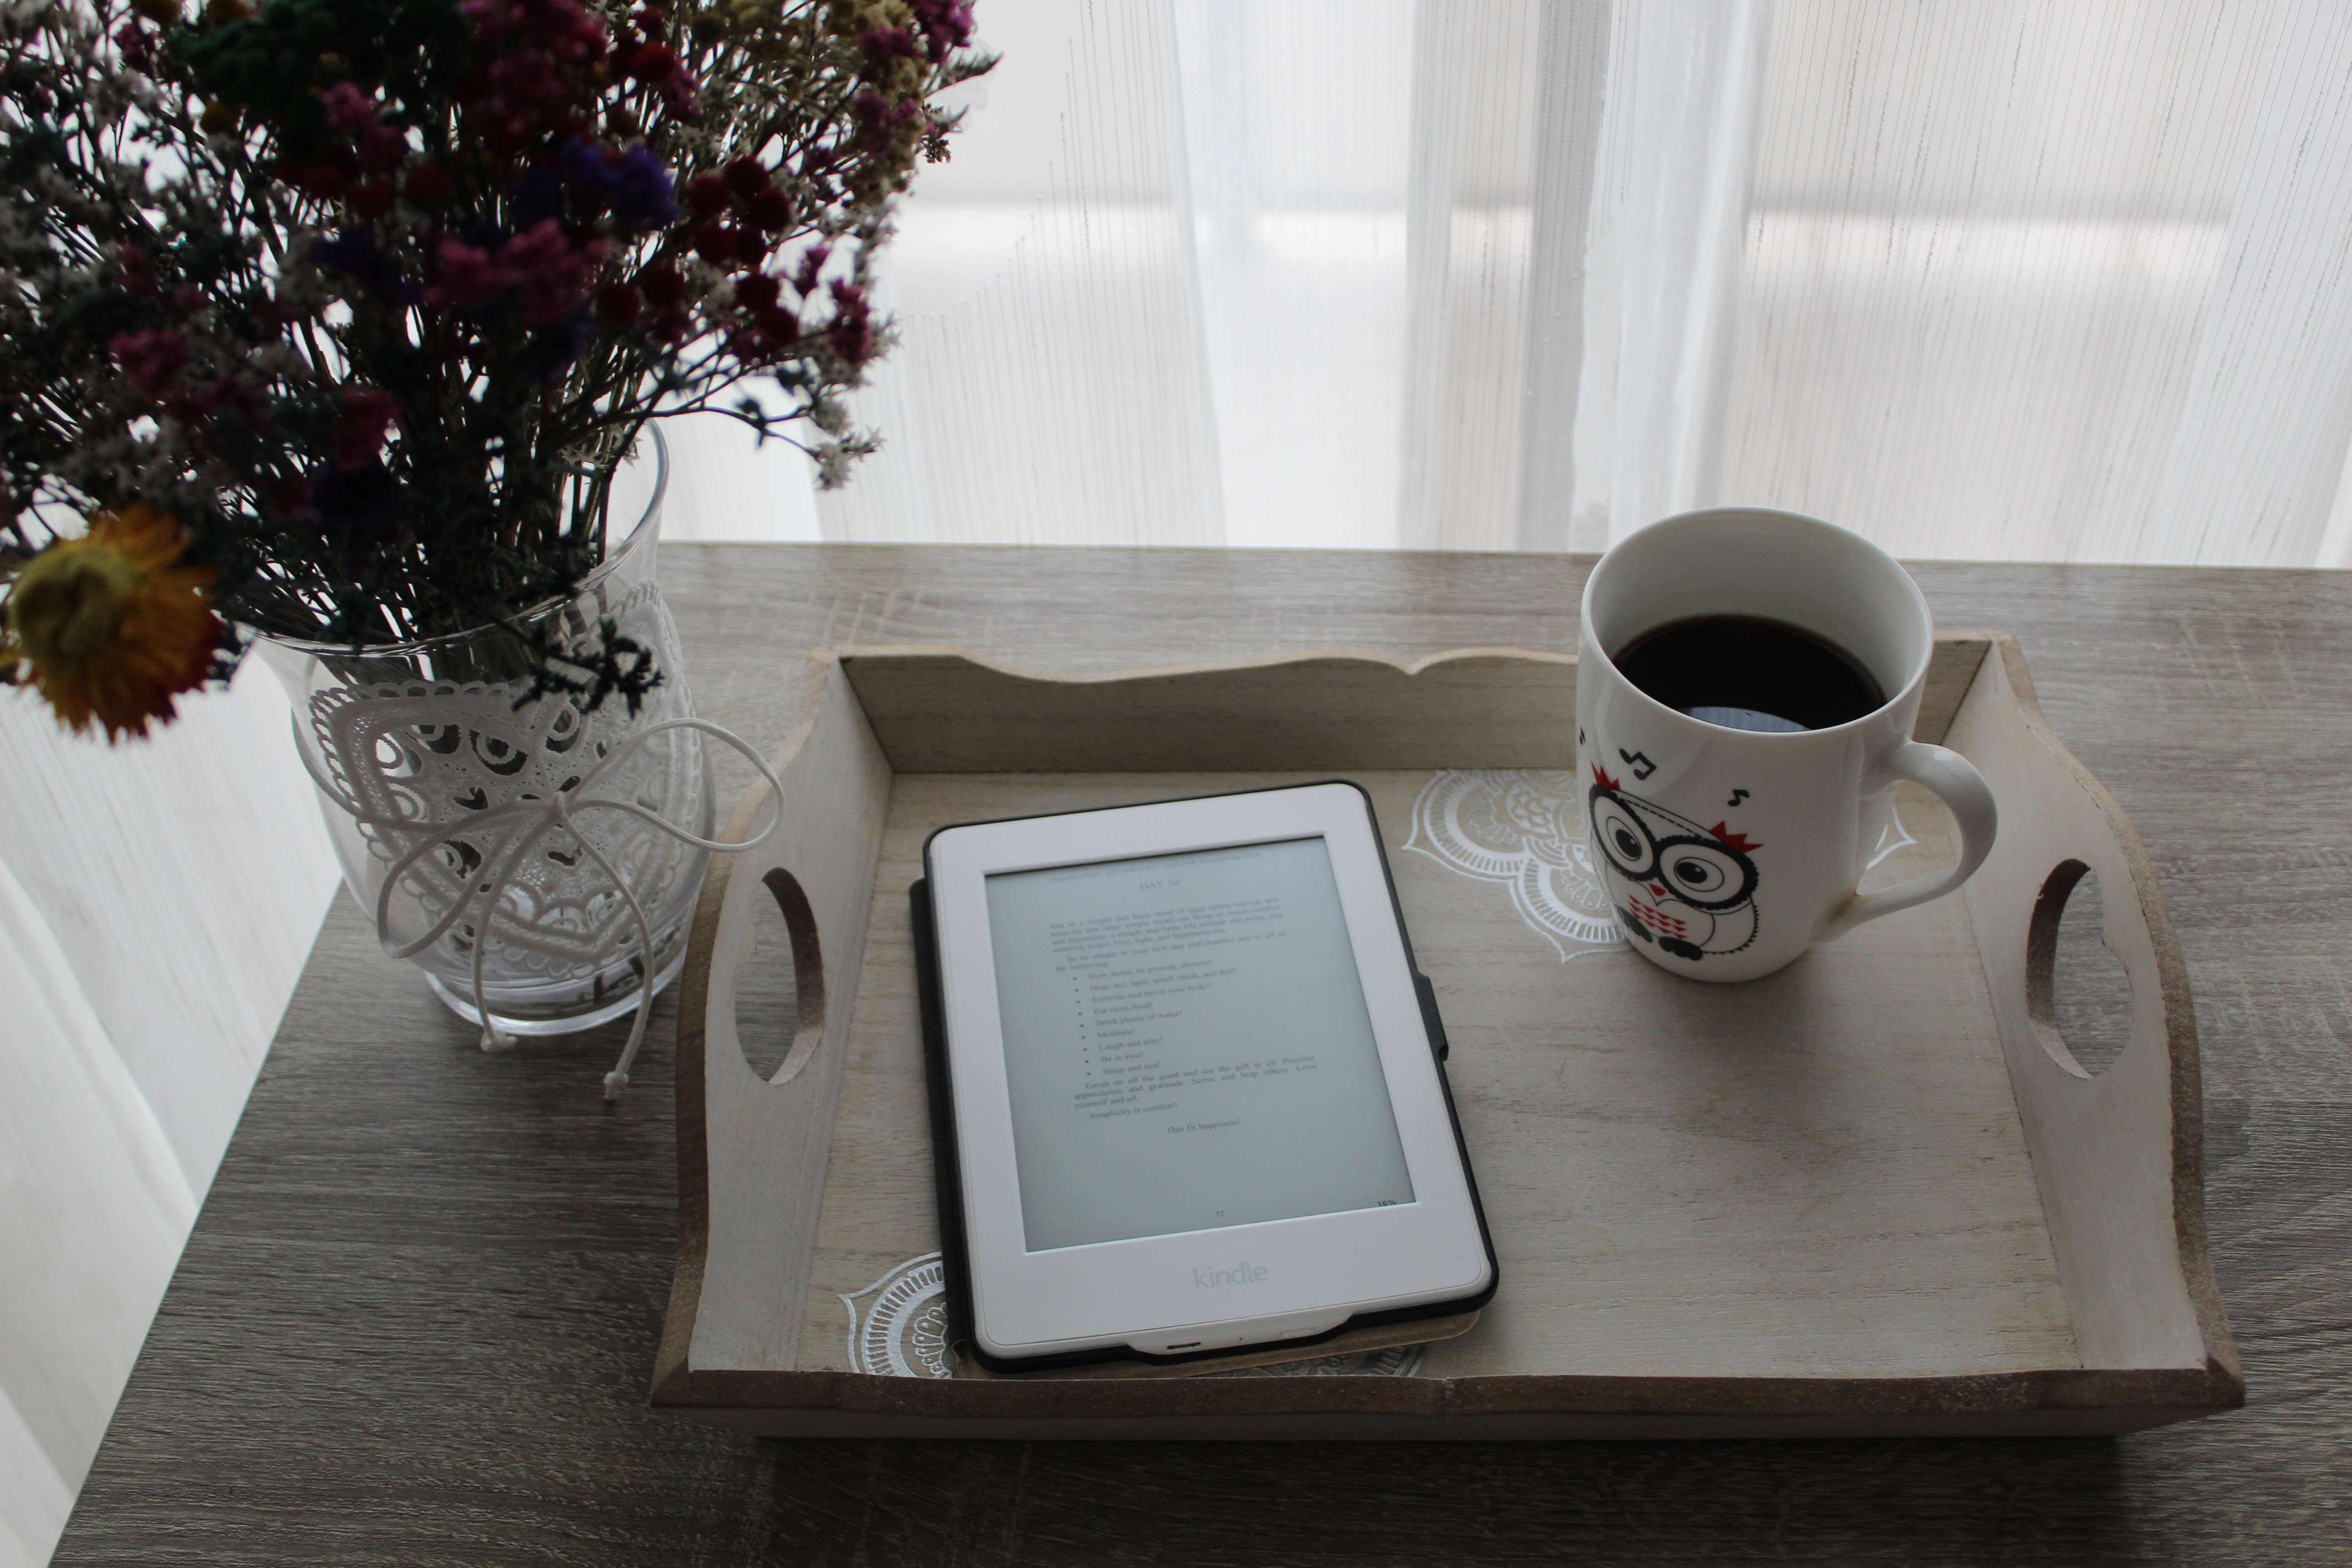 10 things to boost your WFH productivity